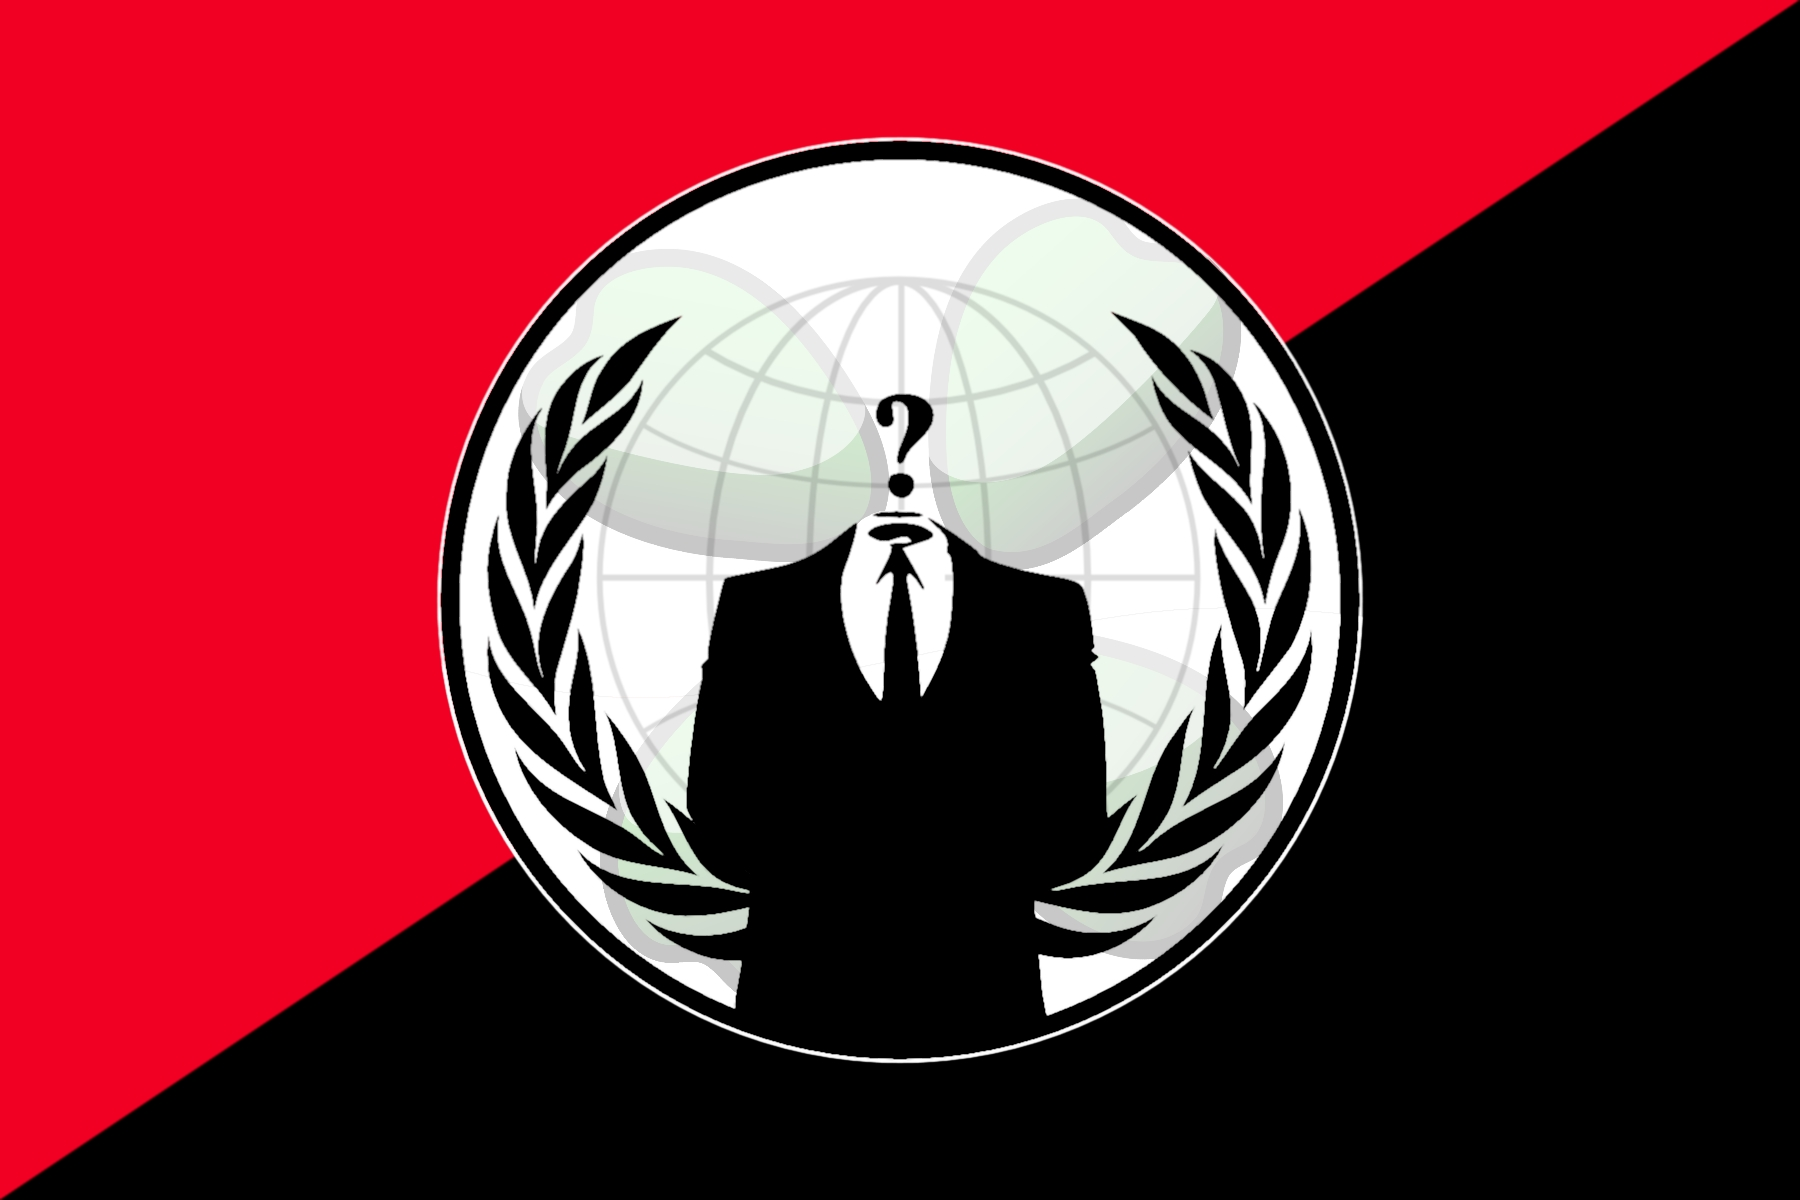 anonymous flag